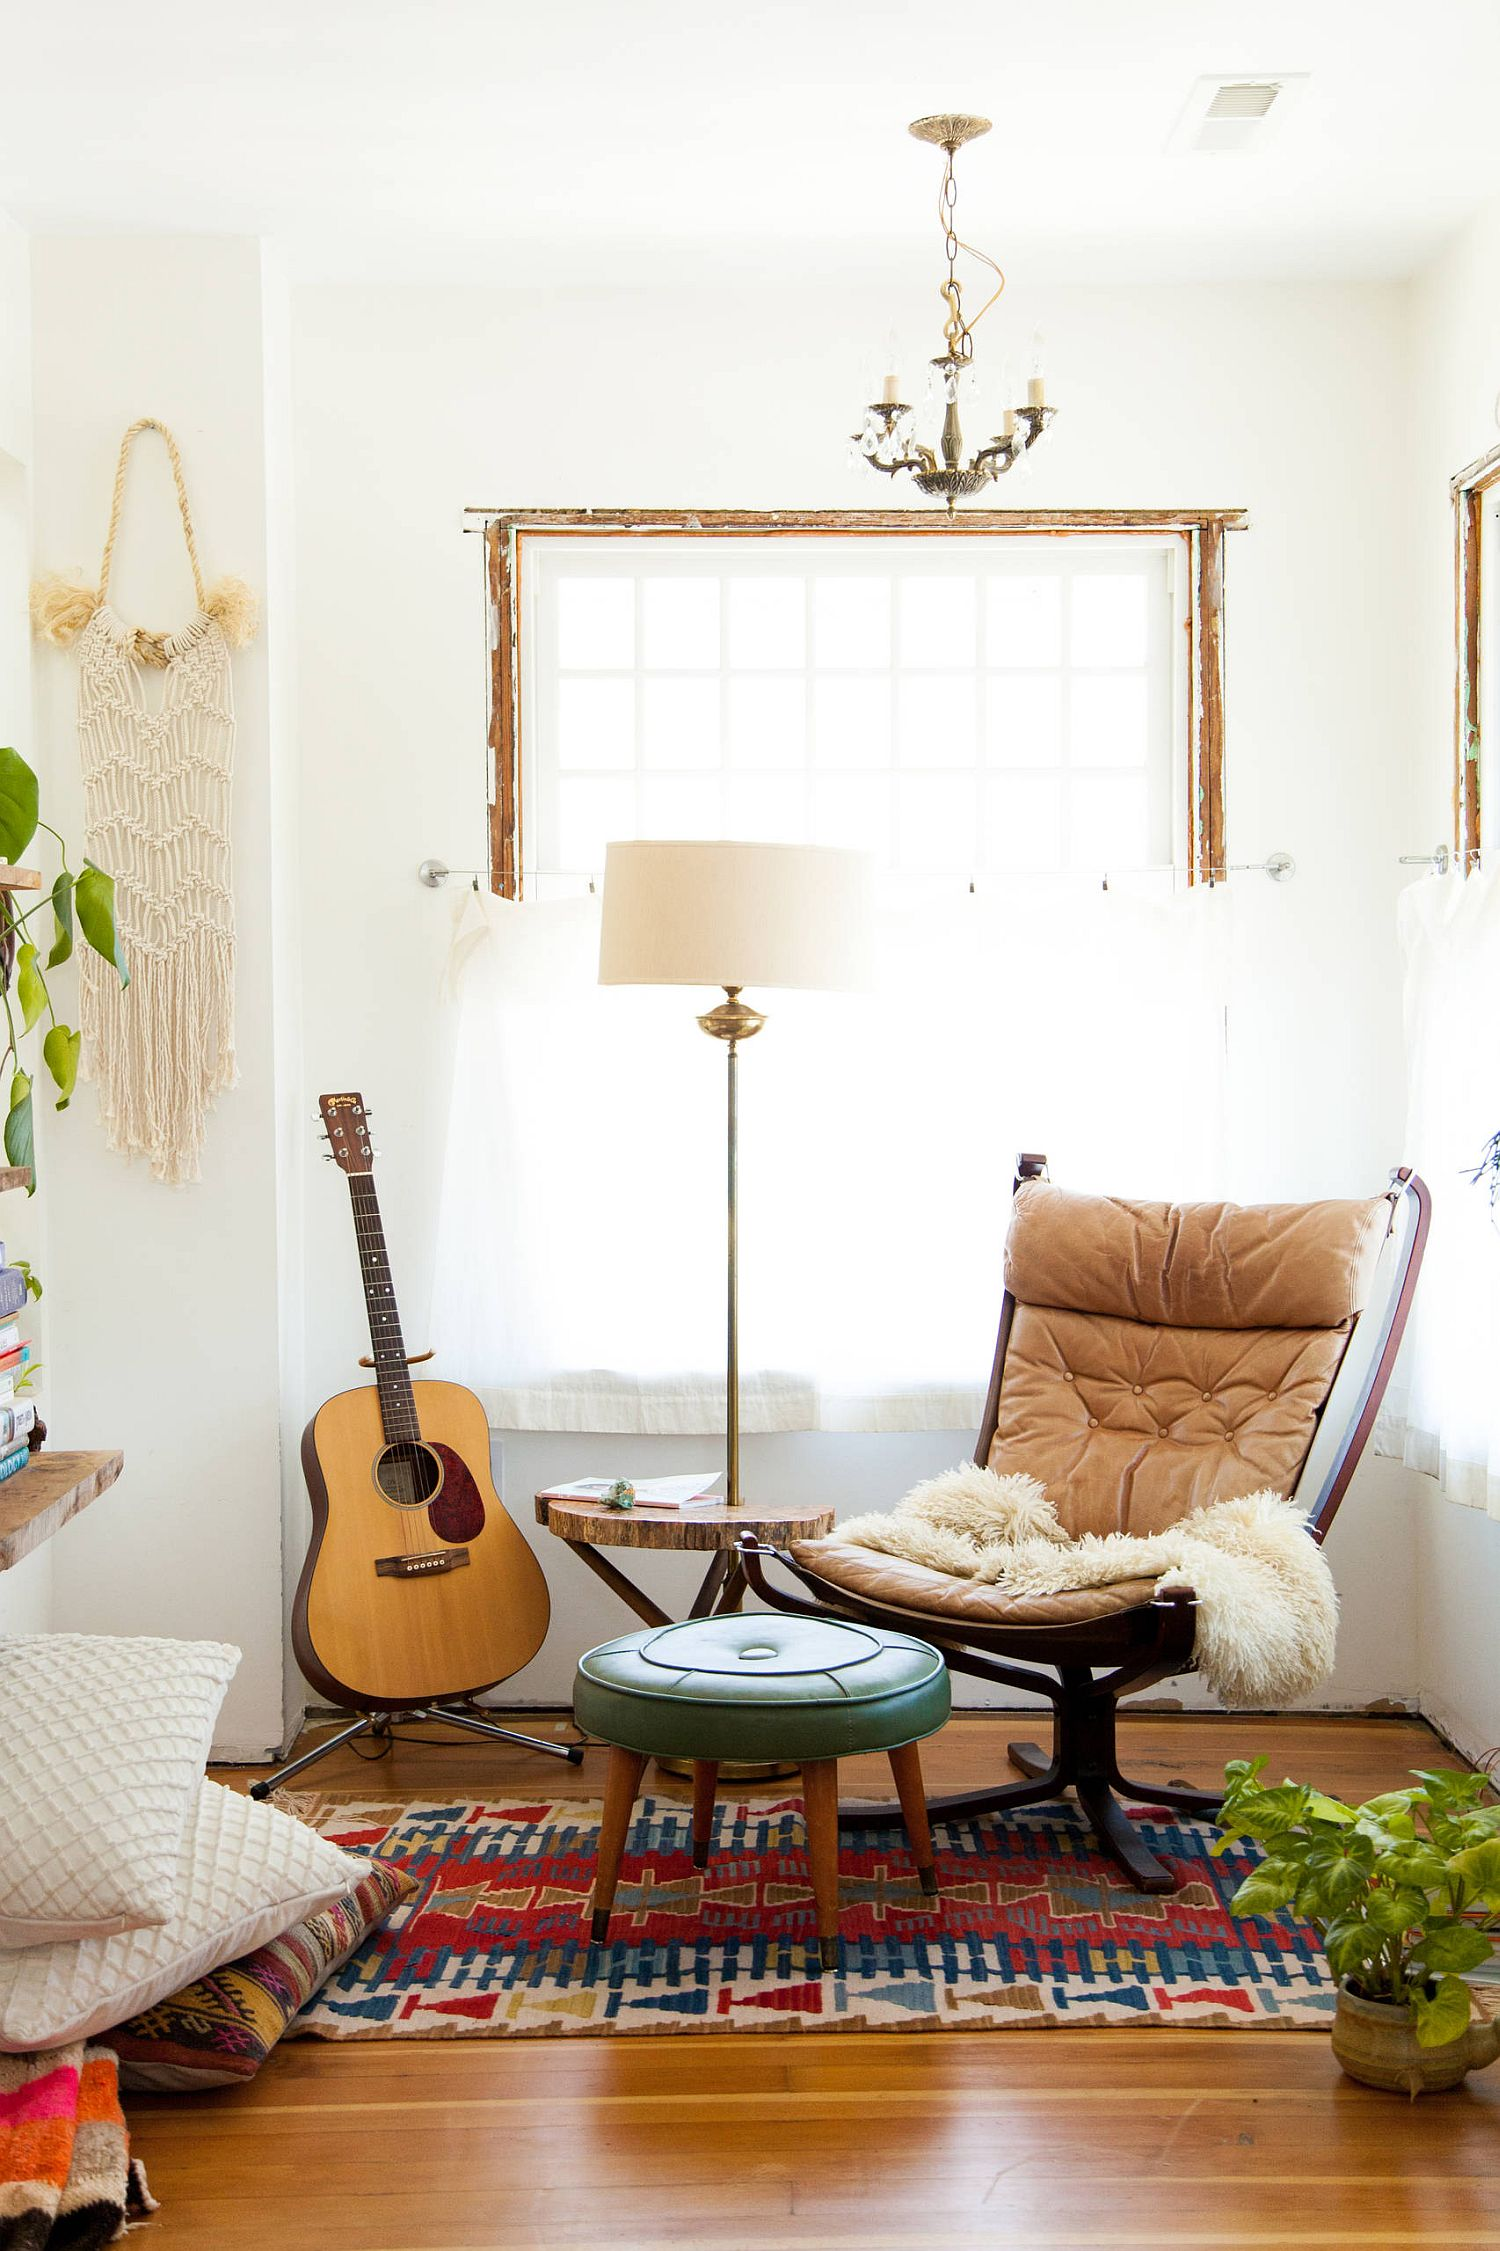 Serene white backdrop coupled with some 1970's vintage charm for the relaxing retro living room